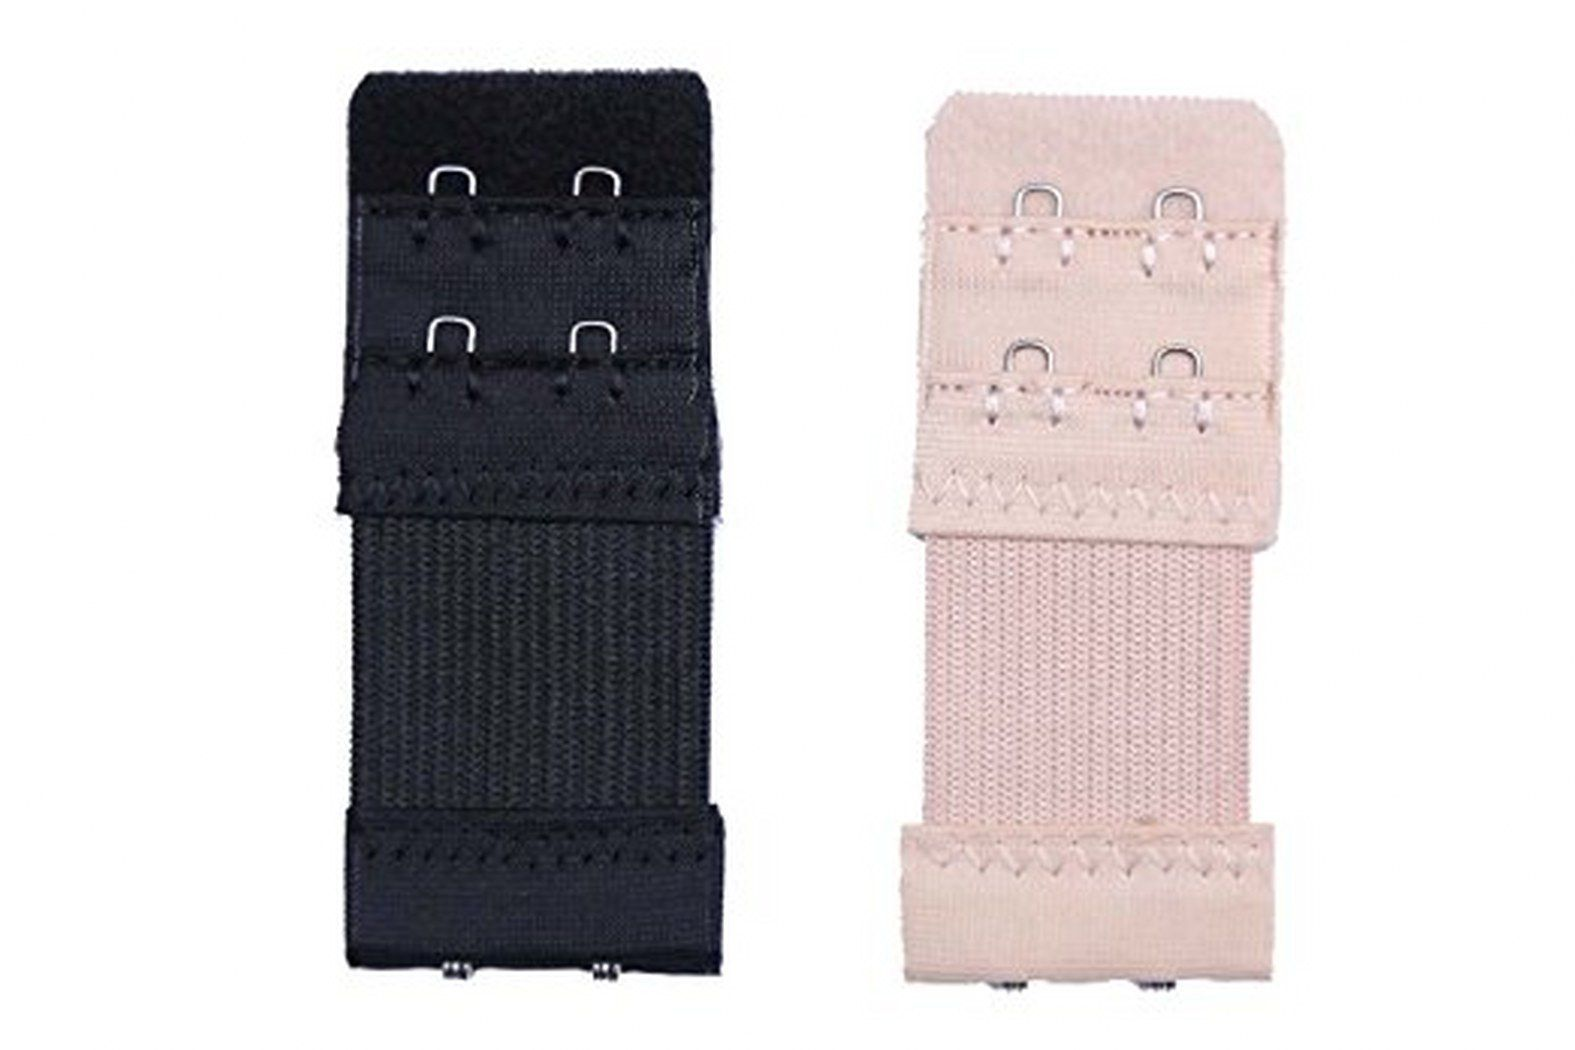 8a6d8ad4df084 Buy Pavvoin bra hook extender with extra elastic Online at Best Prices in  India - Snapdeal